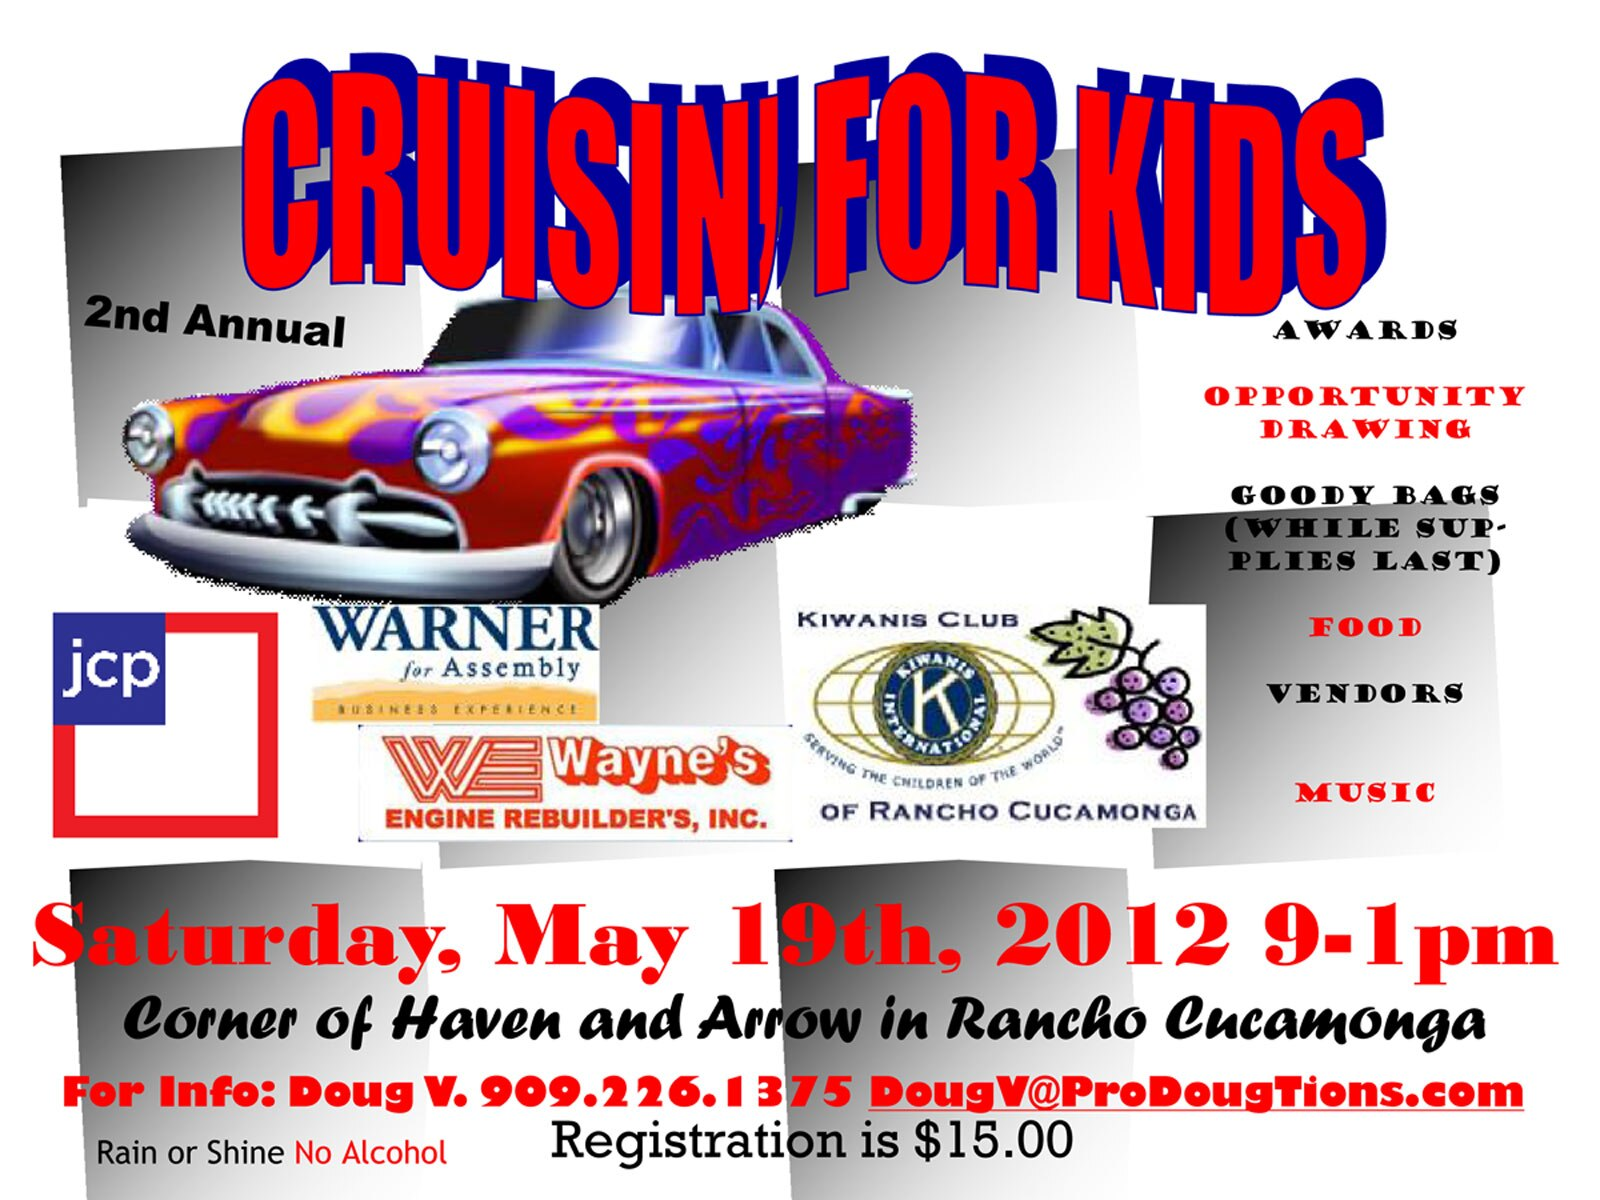 1205-lrmp-01-hp-kiwanis-club-of-rancho-cucamonga-cruisin-for-kids-flyer